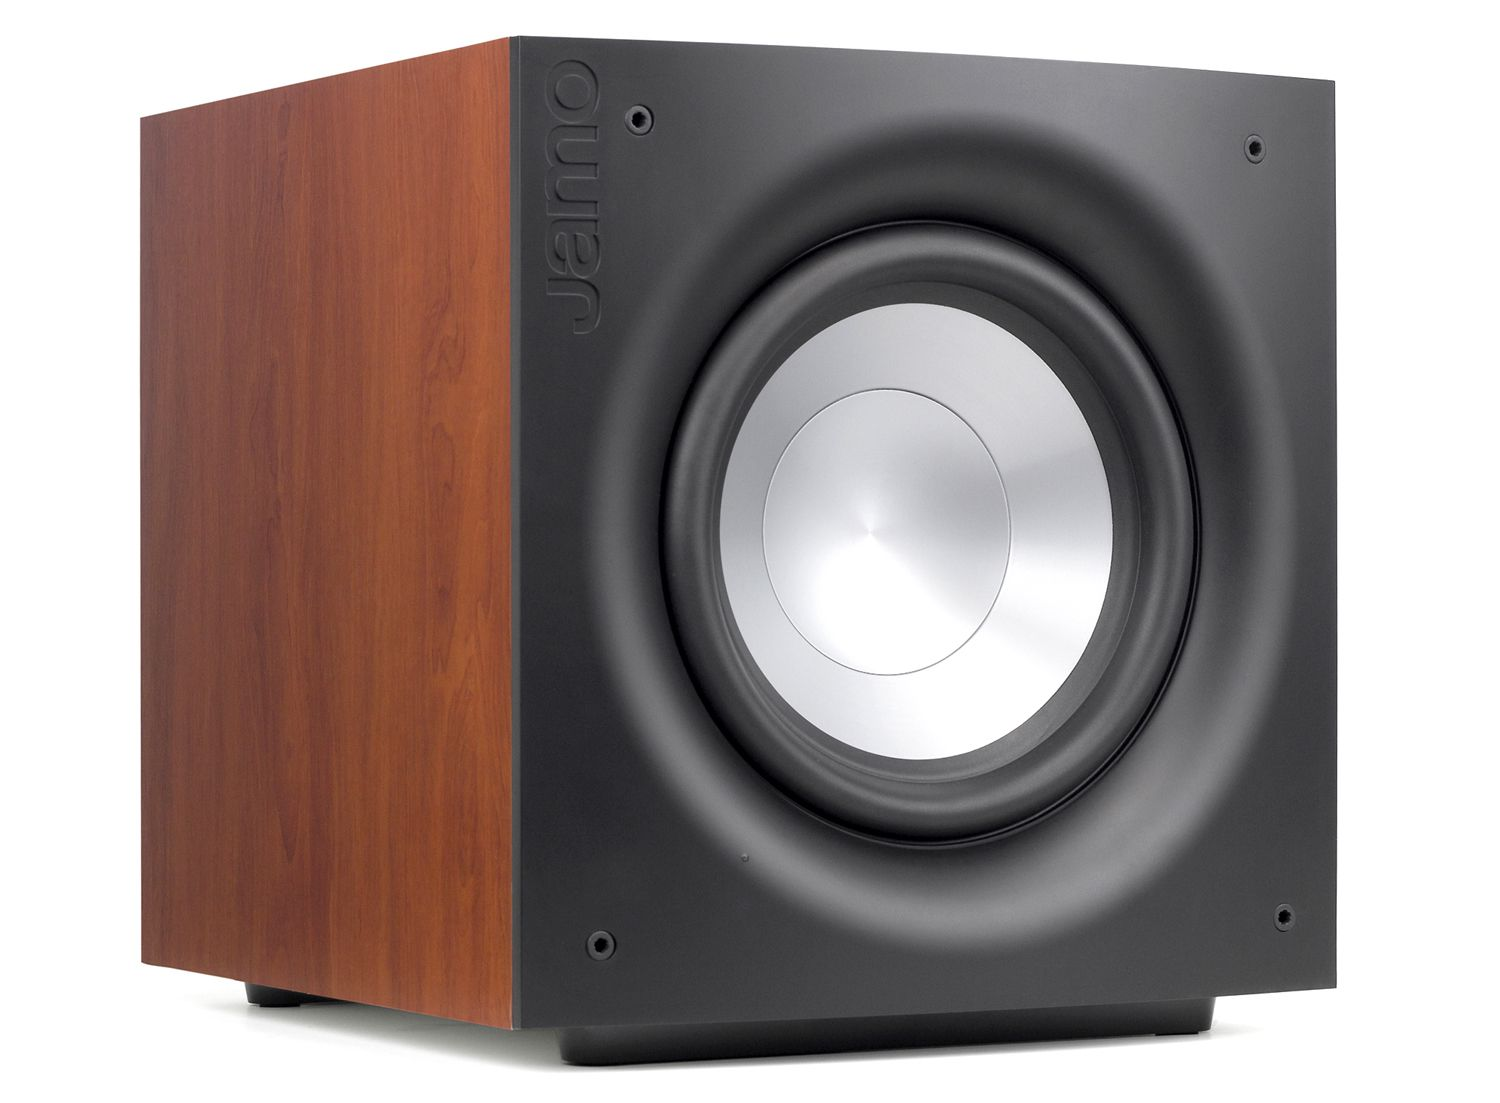 What the .1 Means in 5.1, 6.1, or 7.1 Channel Surround Sound